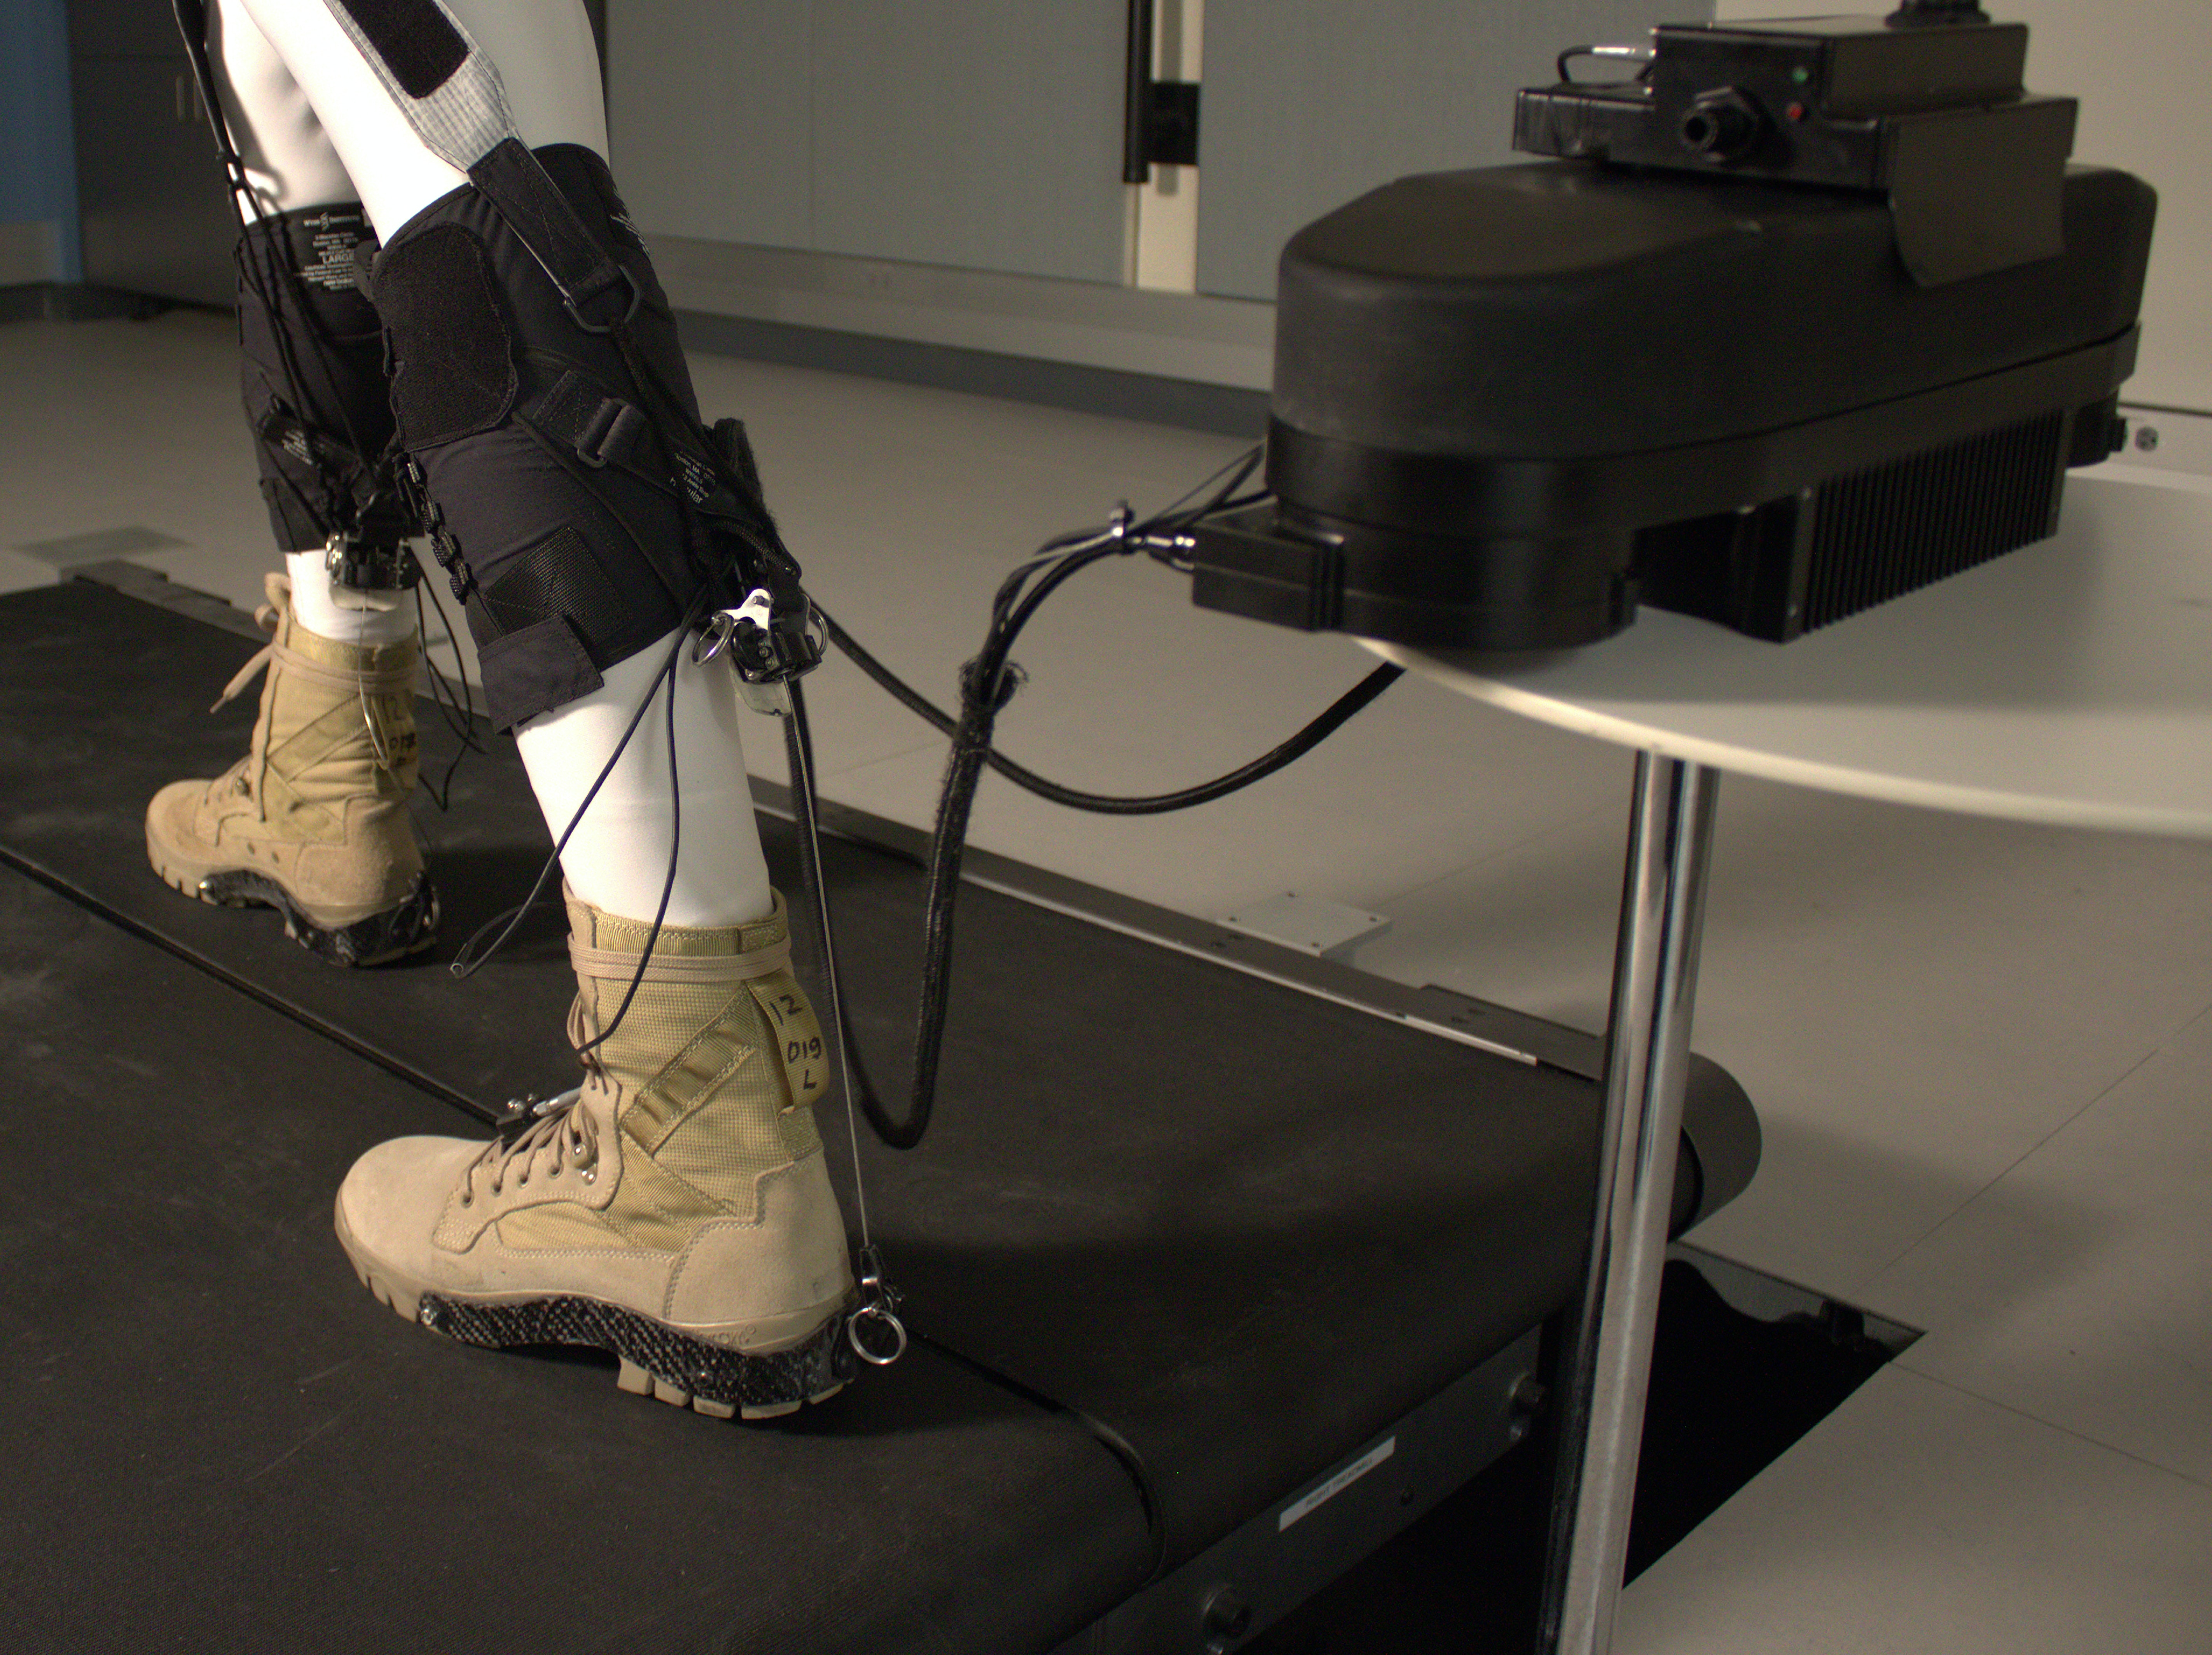 The robotic ankle, controlled by a motor, is attached to spandex straps  that connects to a waist band, allowing for both hip and ankle flexion.